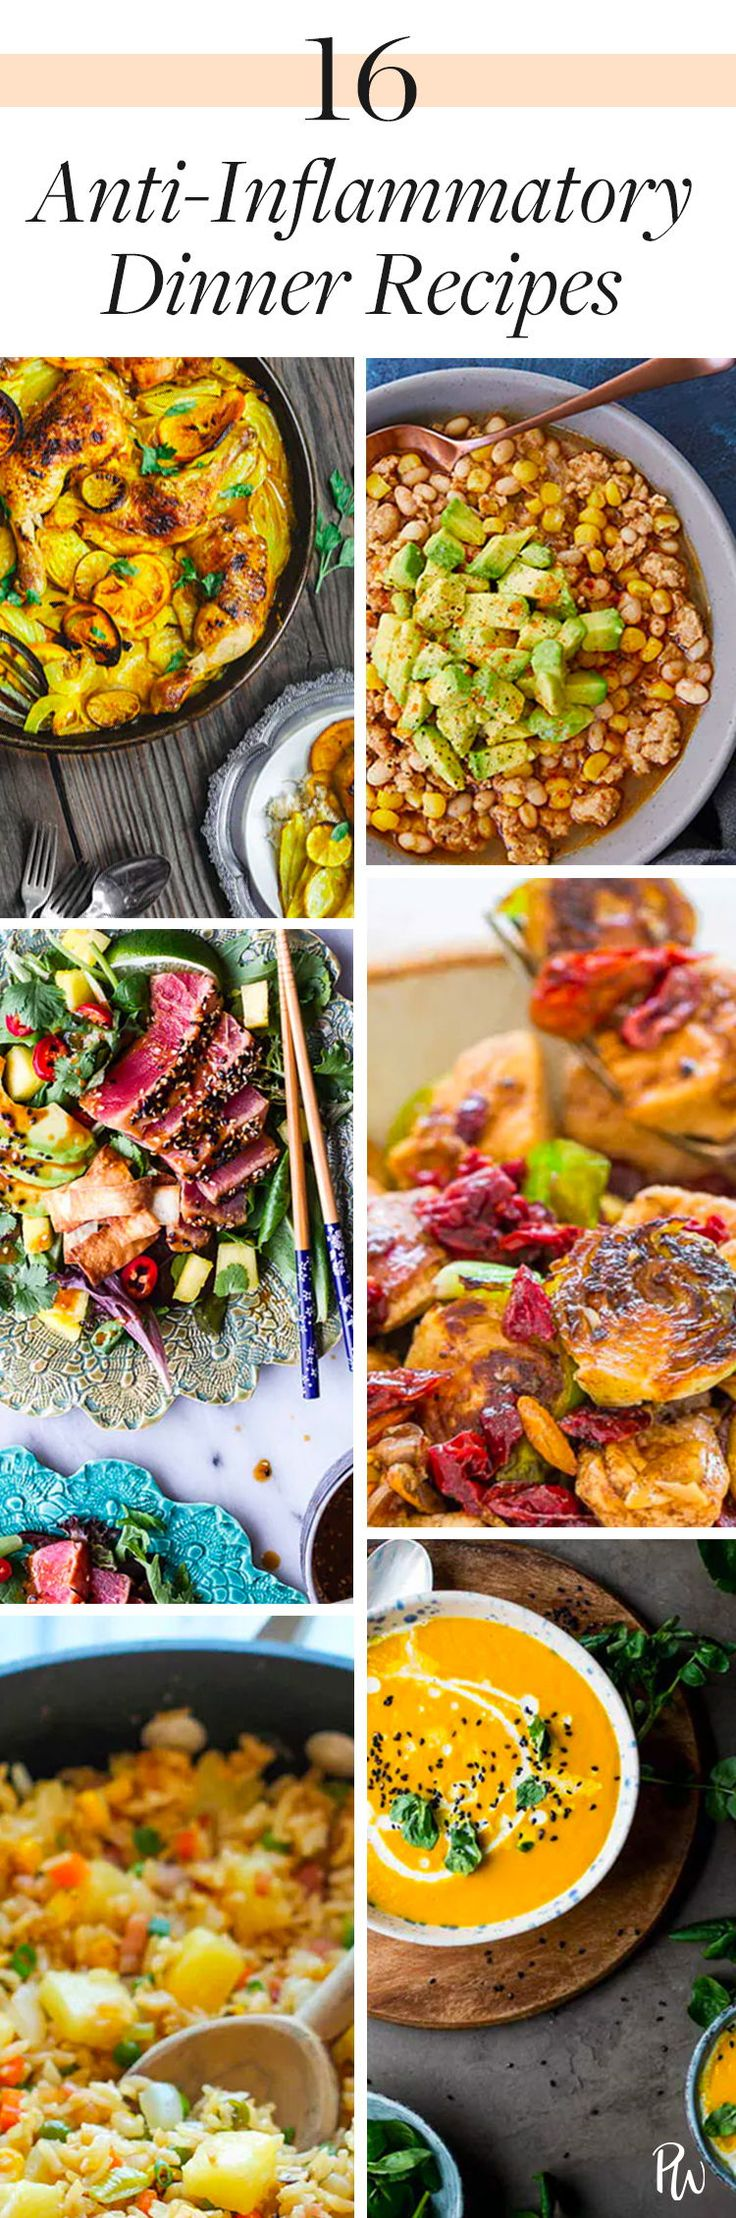 16 Dinner Recipes To Help Kick Inflammation To The Curb